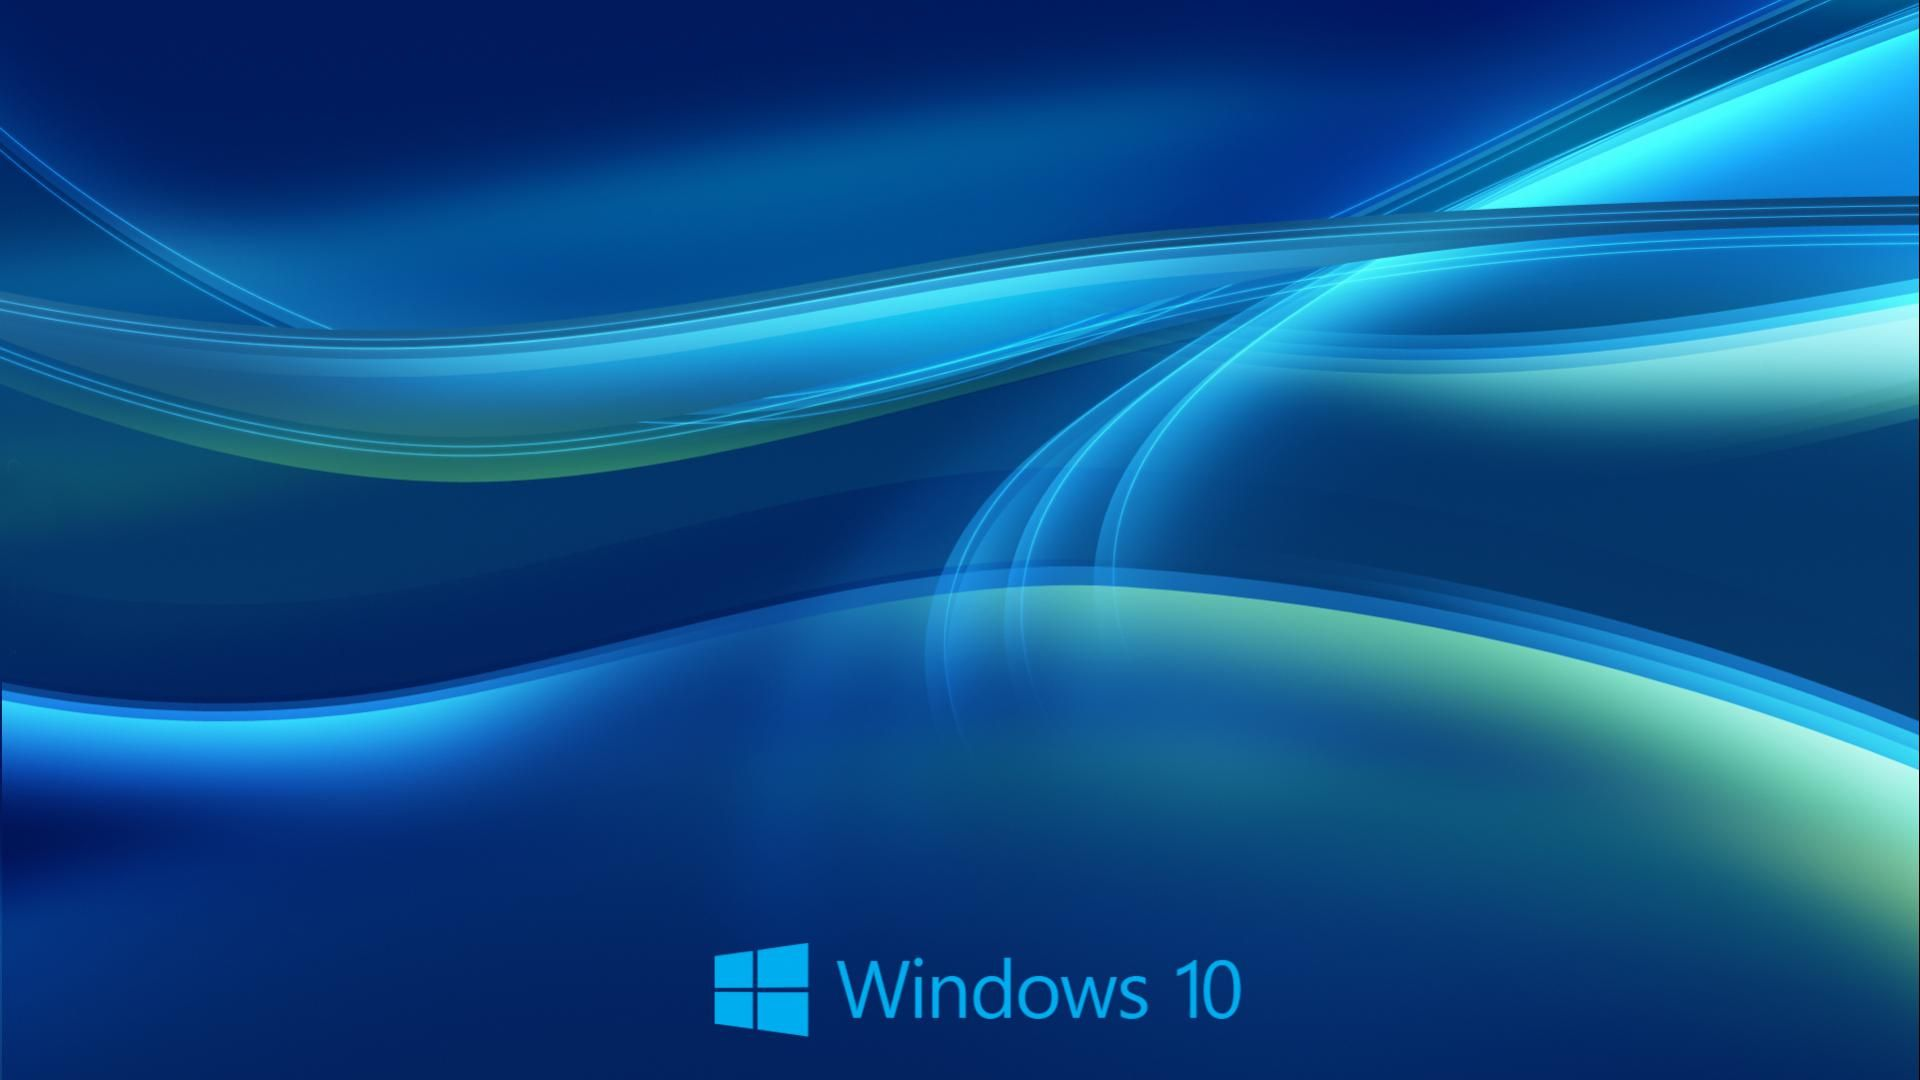 windows 10 wallpaper hd 1920a—1080